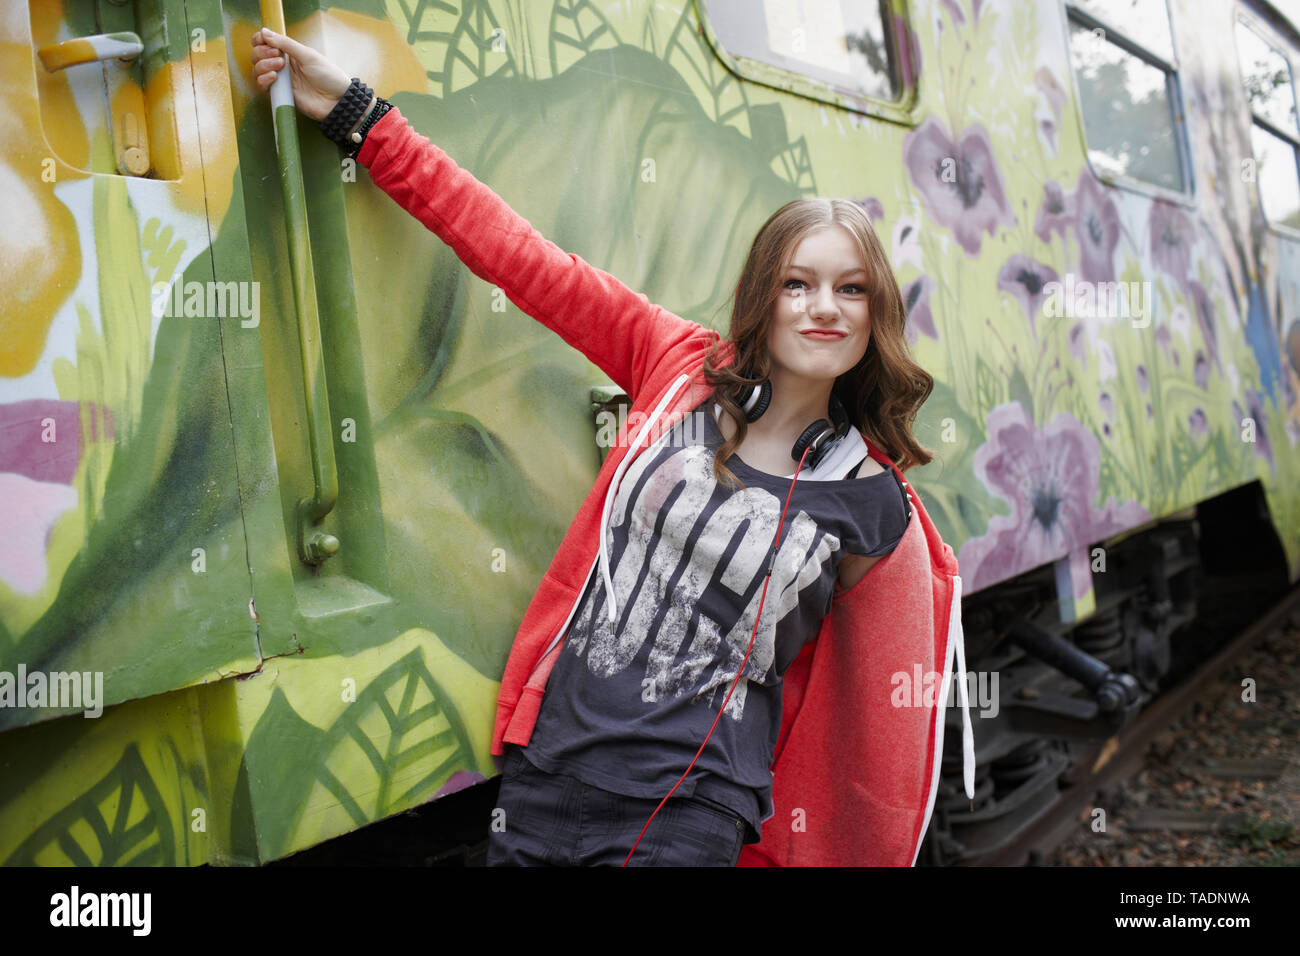 Portrait of teenage girl grimacing at a painted train car - Stock Image